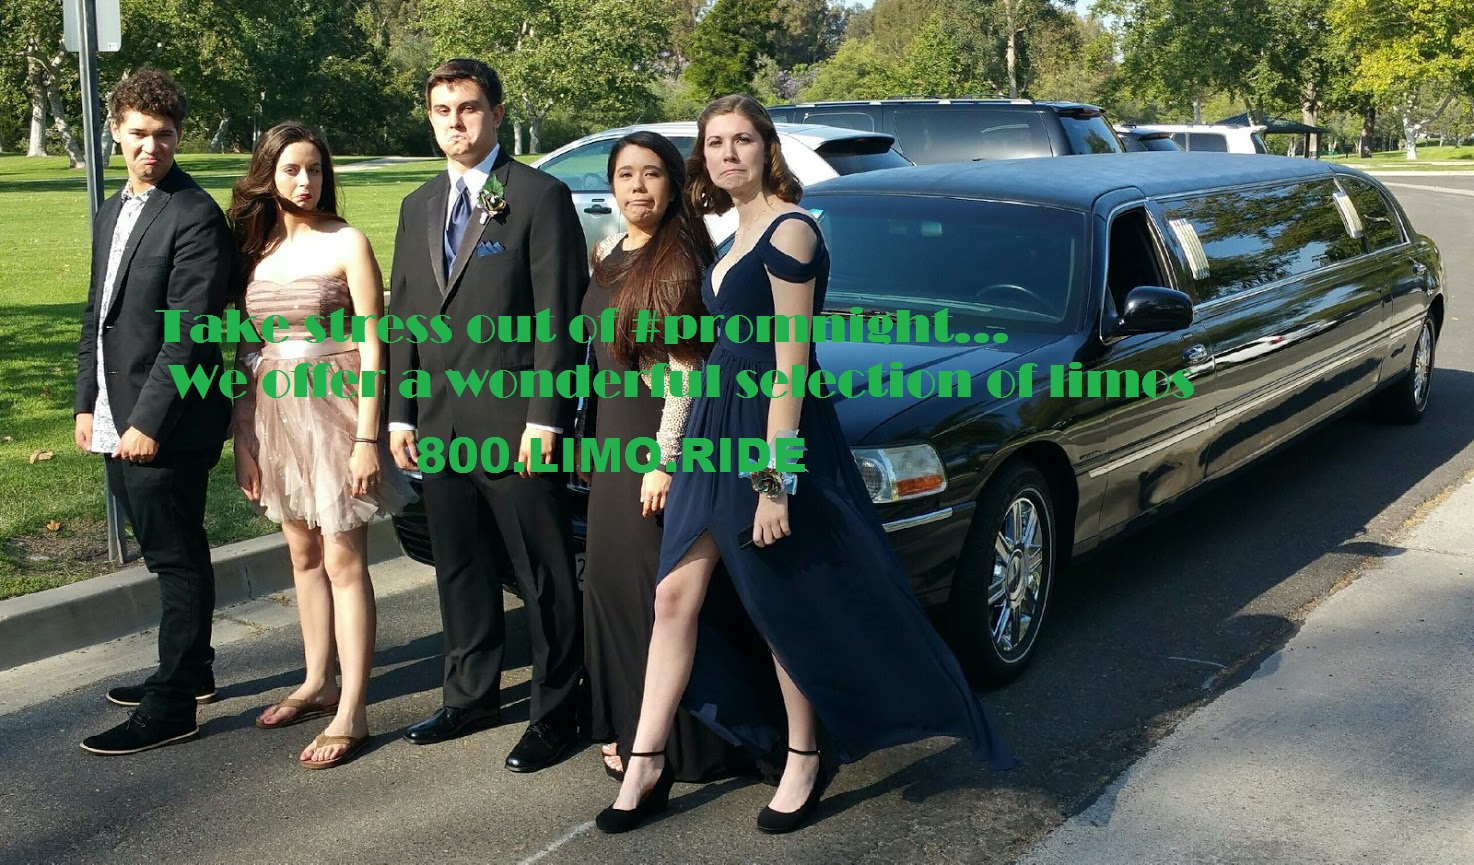 Limo Prom Orange County Limo Services Excel Fleet Limo Renting A Prom